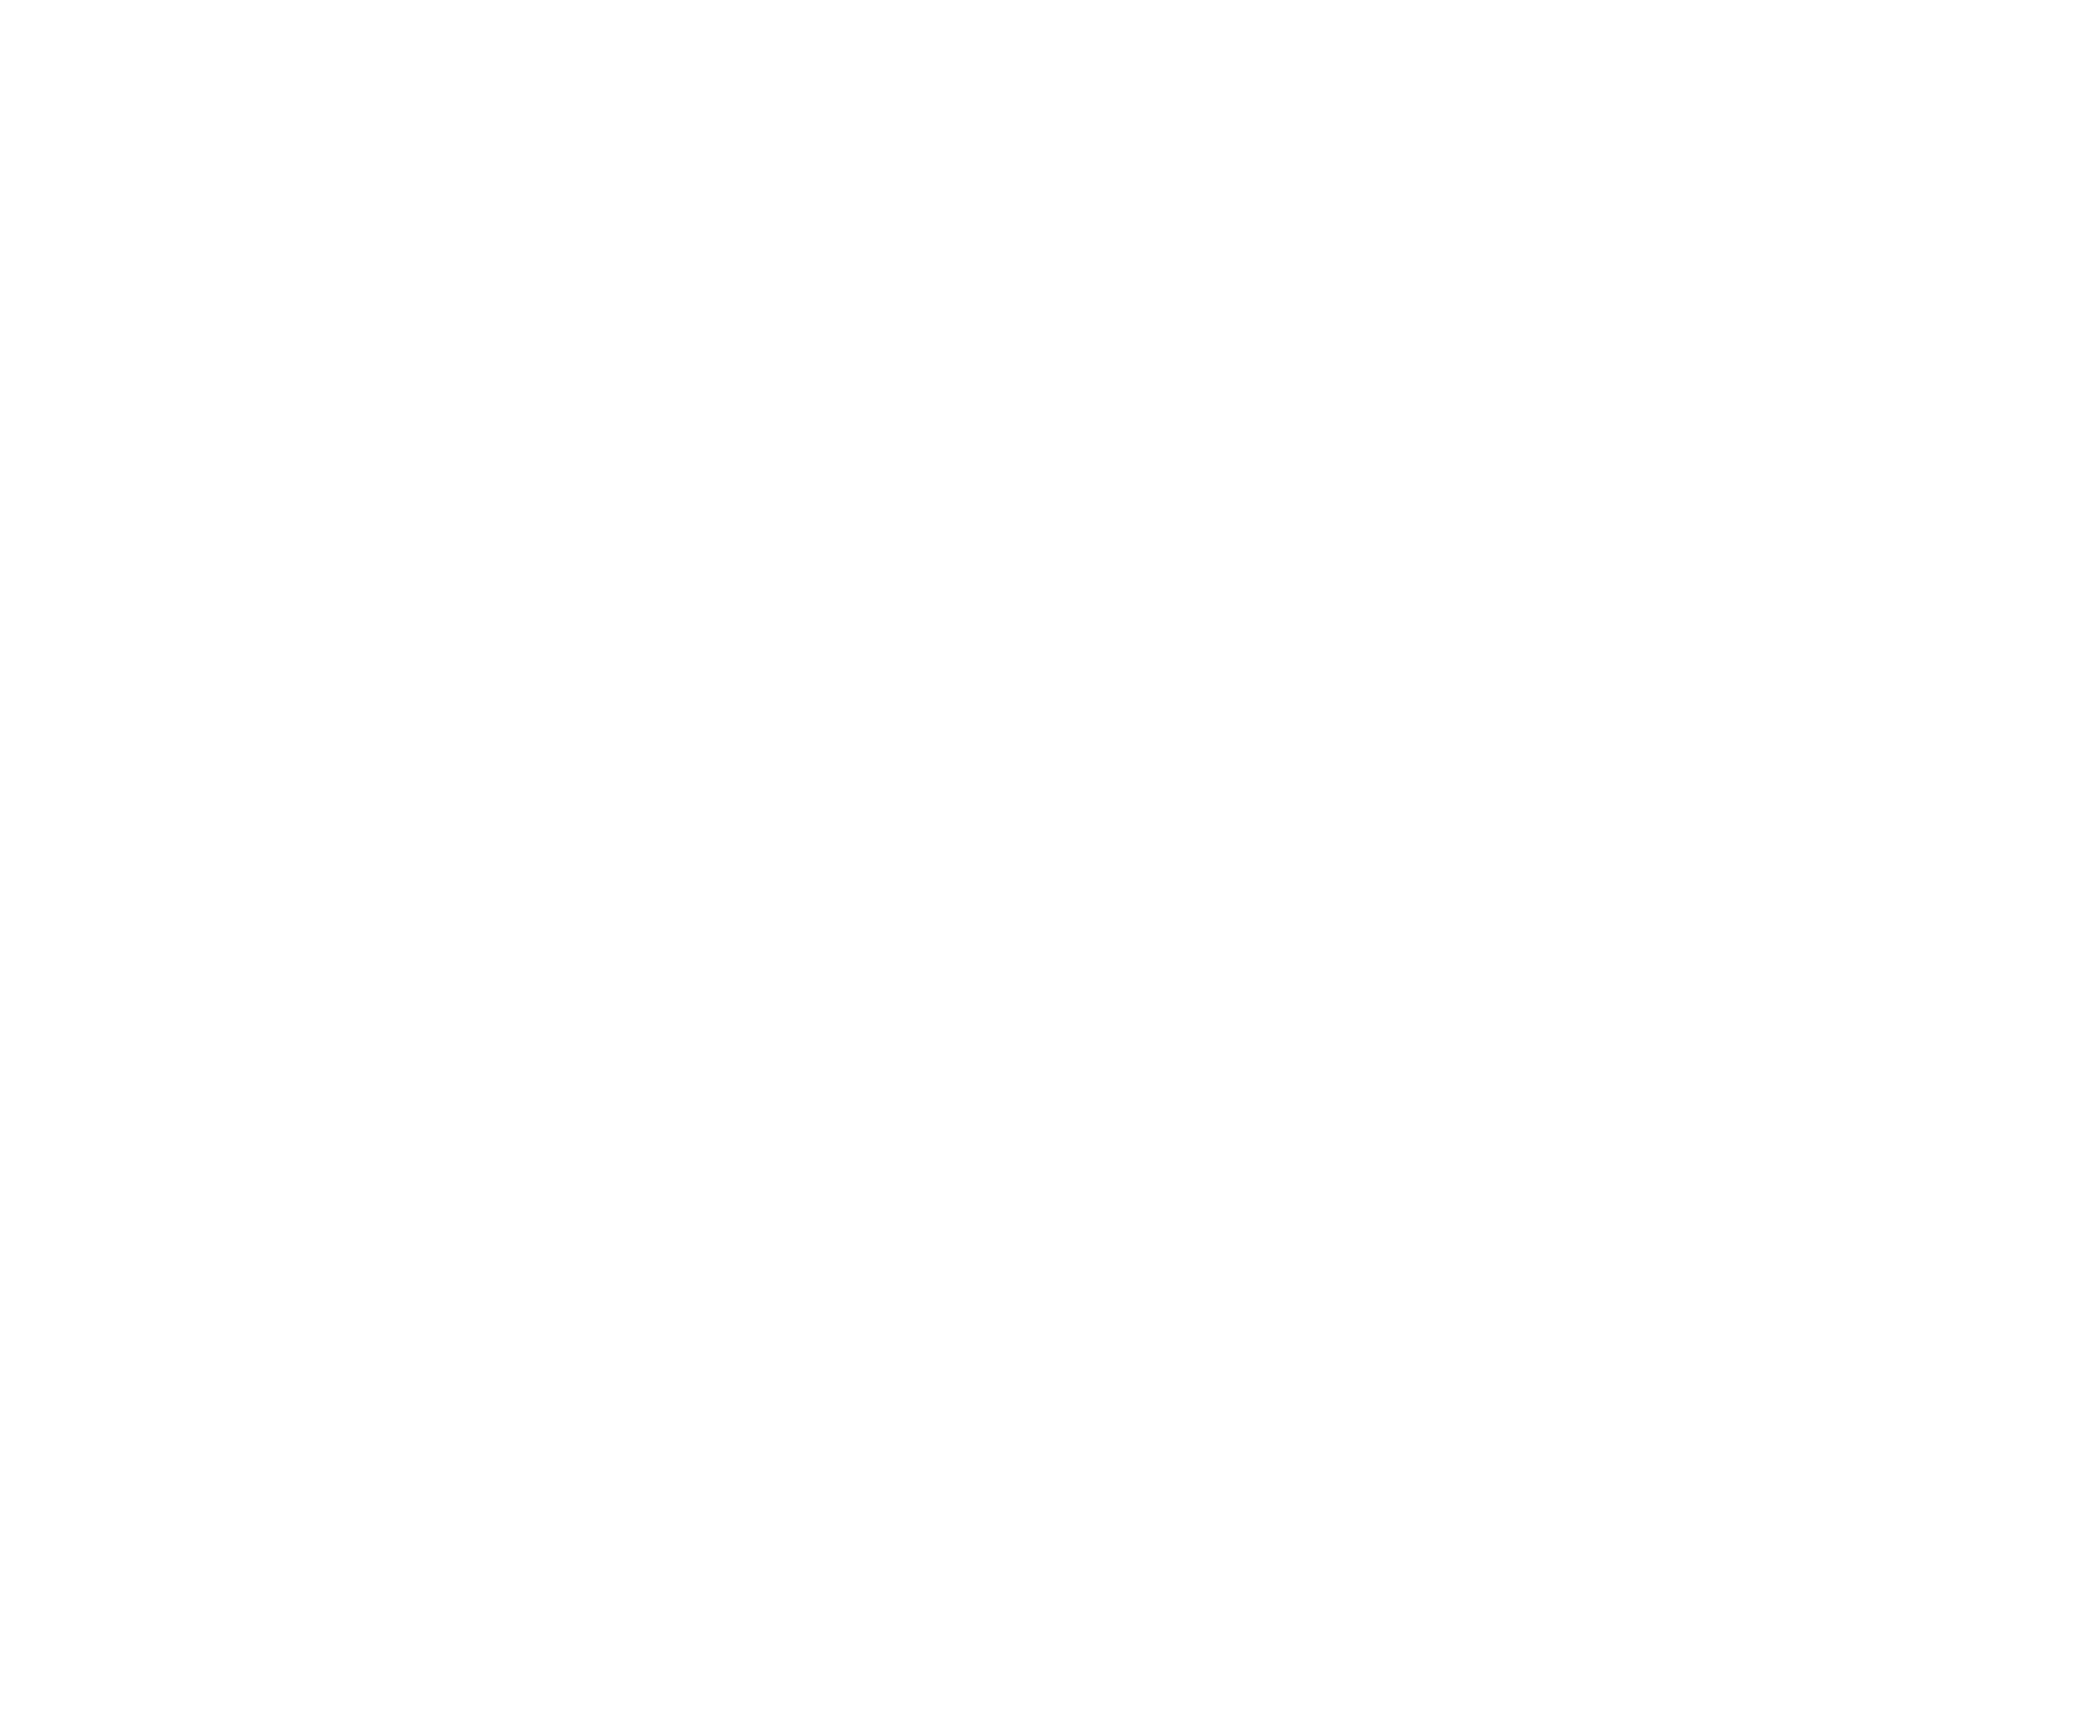 Creativity Justified